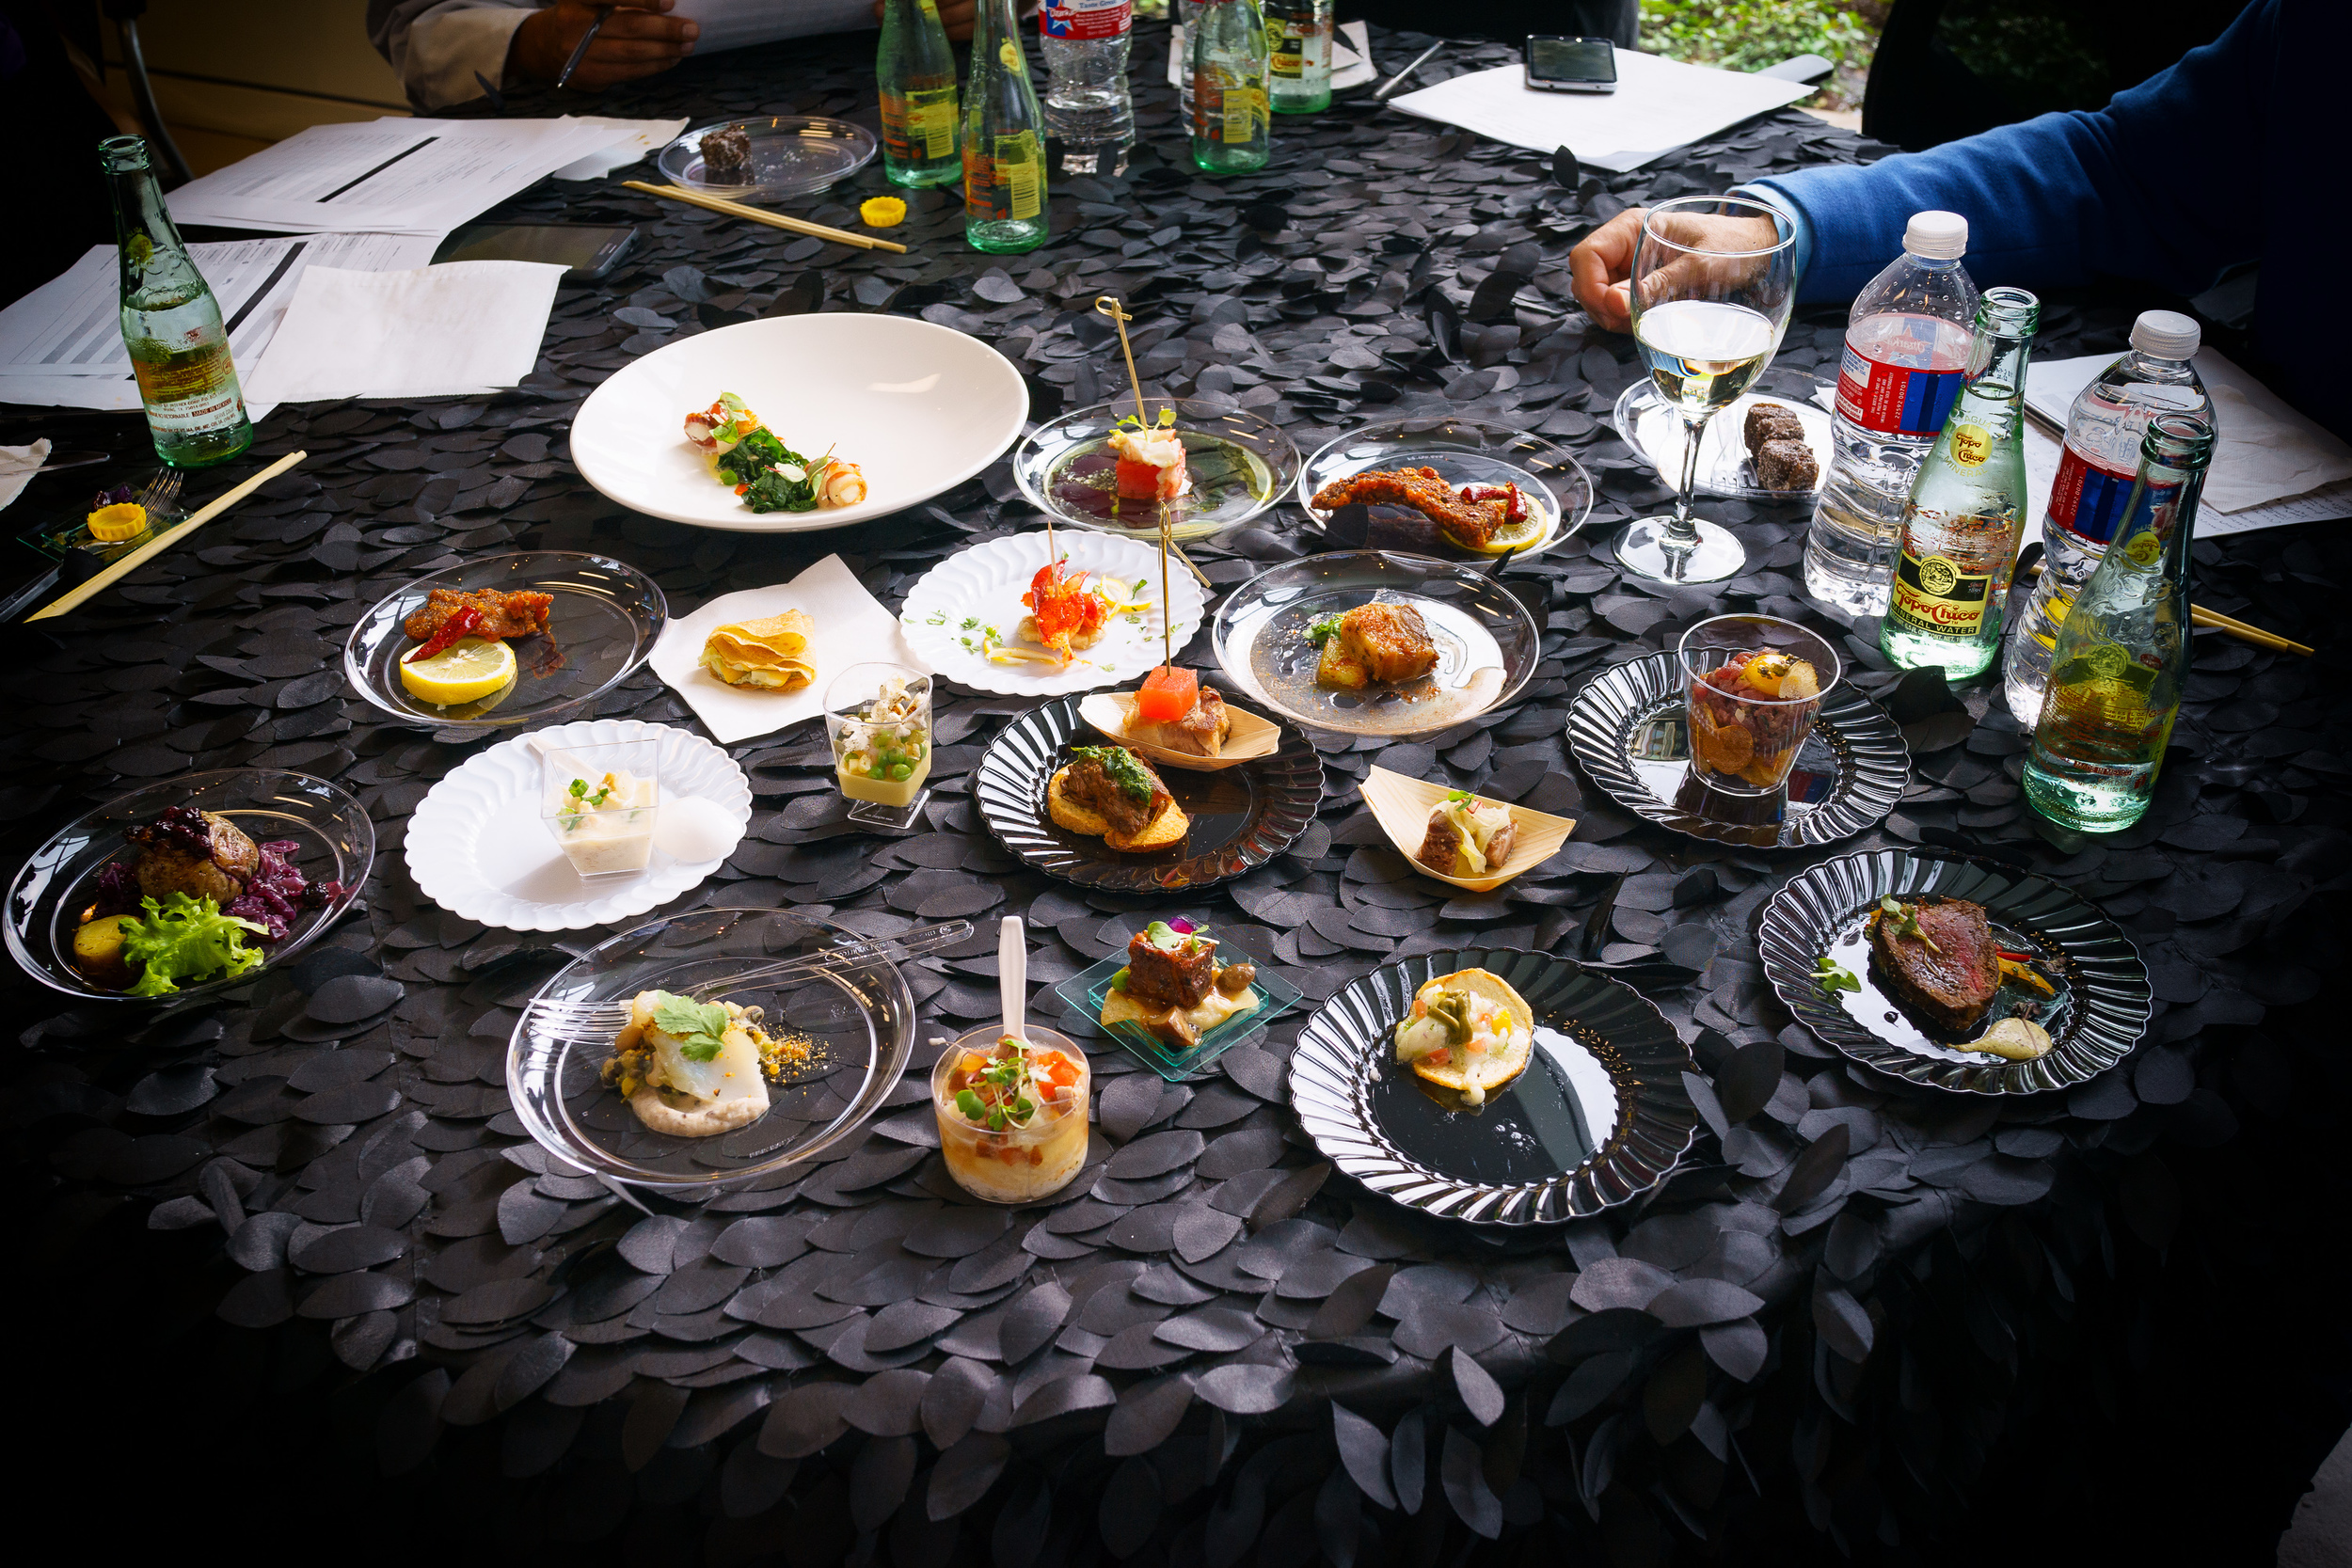 All 20 dishes from 17 contestants